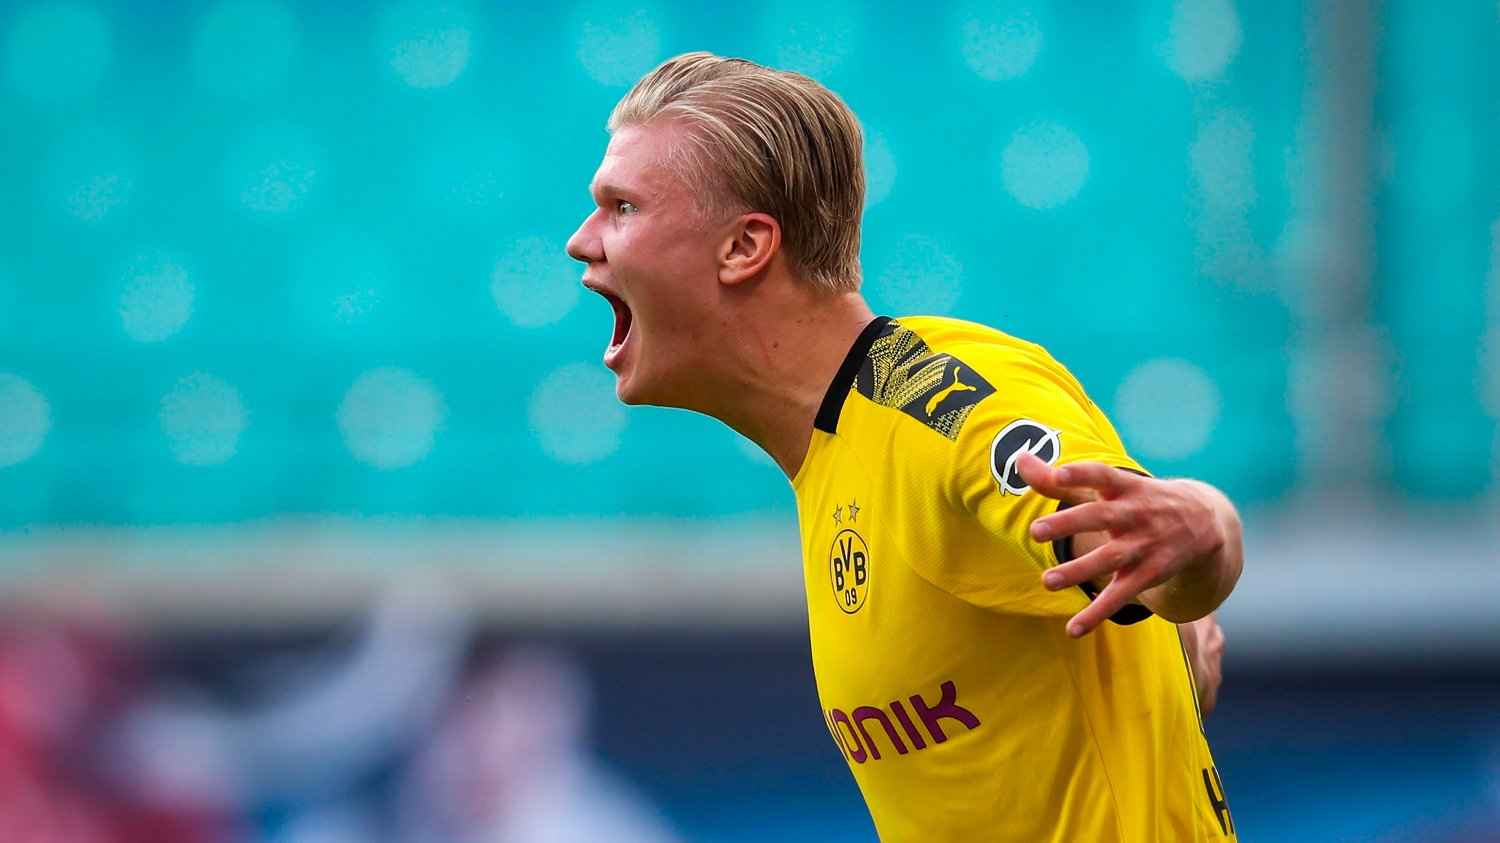 Dortmund's Norwegian forward Erling Braut Haaland / DFL REGULATIONS PROHIBIT ANY USE OF PHOTOGRAPHS AS IMAGE SEQUENCES AND/OR QUASI-VIDEO